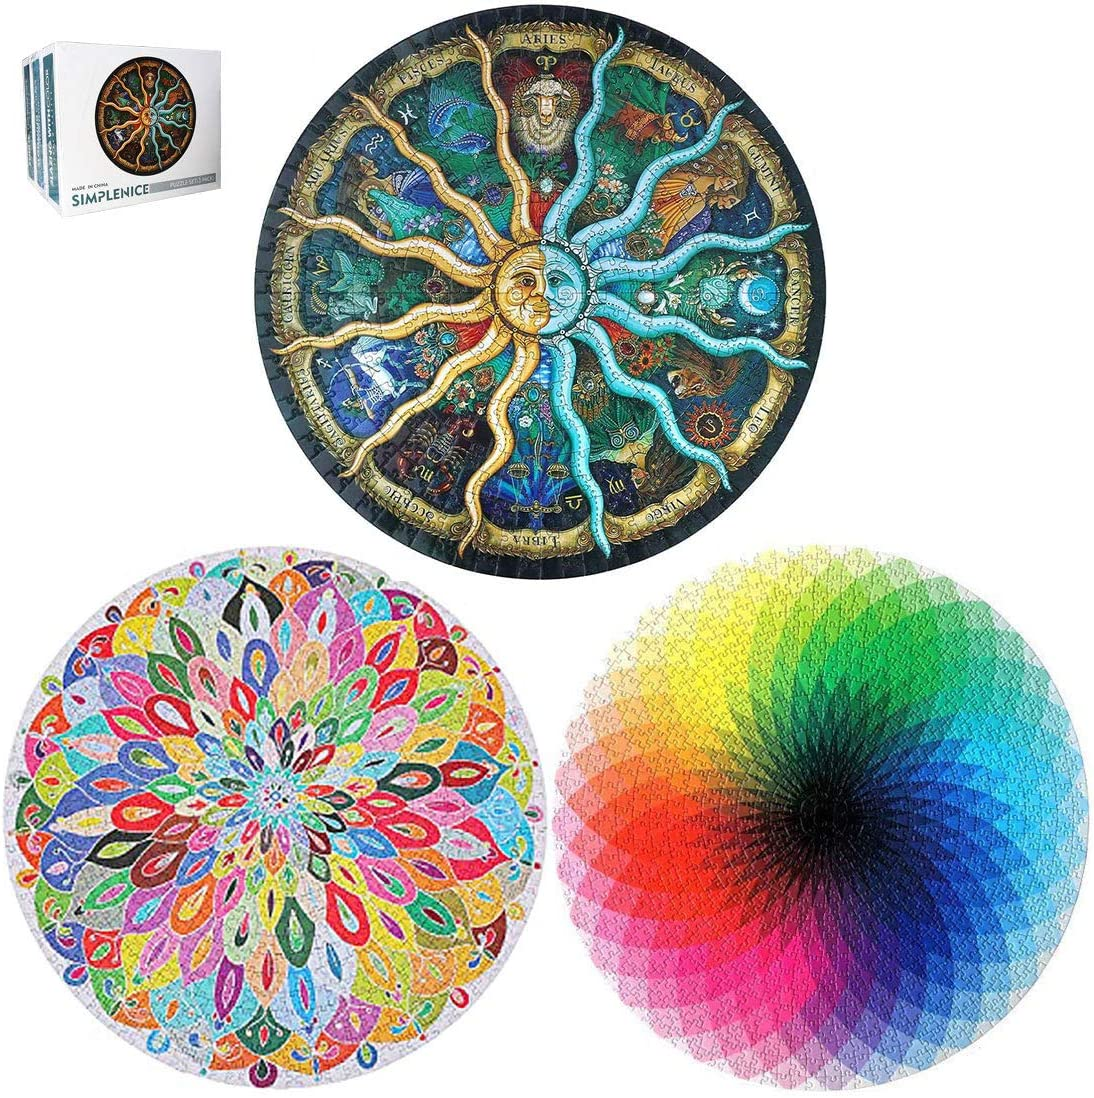 Jigsaw Puzzle for Adults 1000 Pieces Difficult Circular Puzzle Set Adult Games Family Puzzle Children Puzzle,3 in 1 Puzzle Toys Set for Indoor Activities